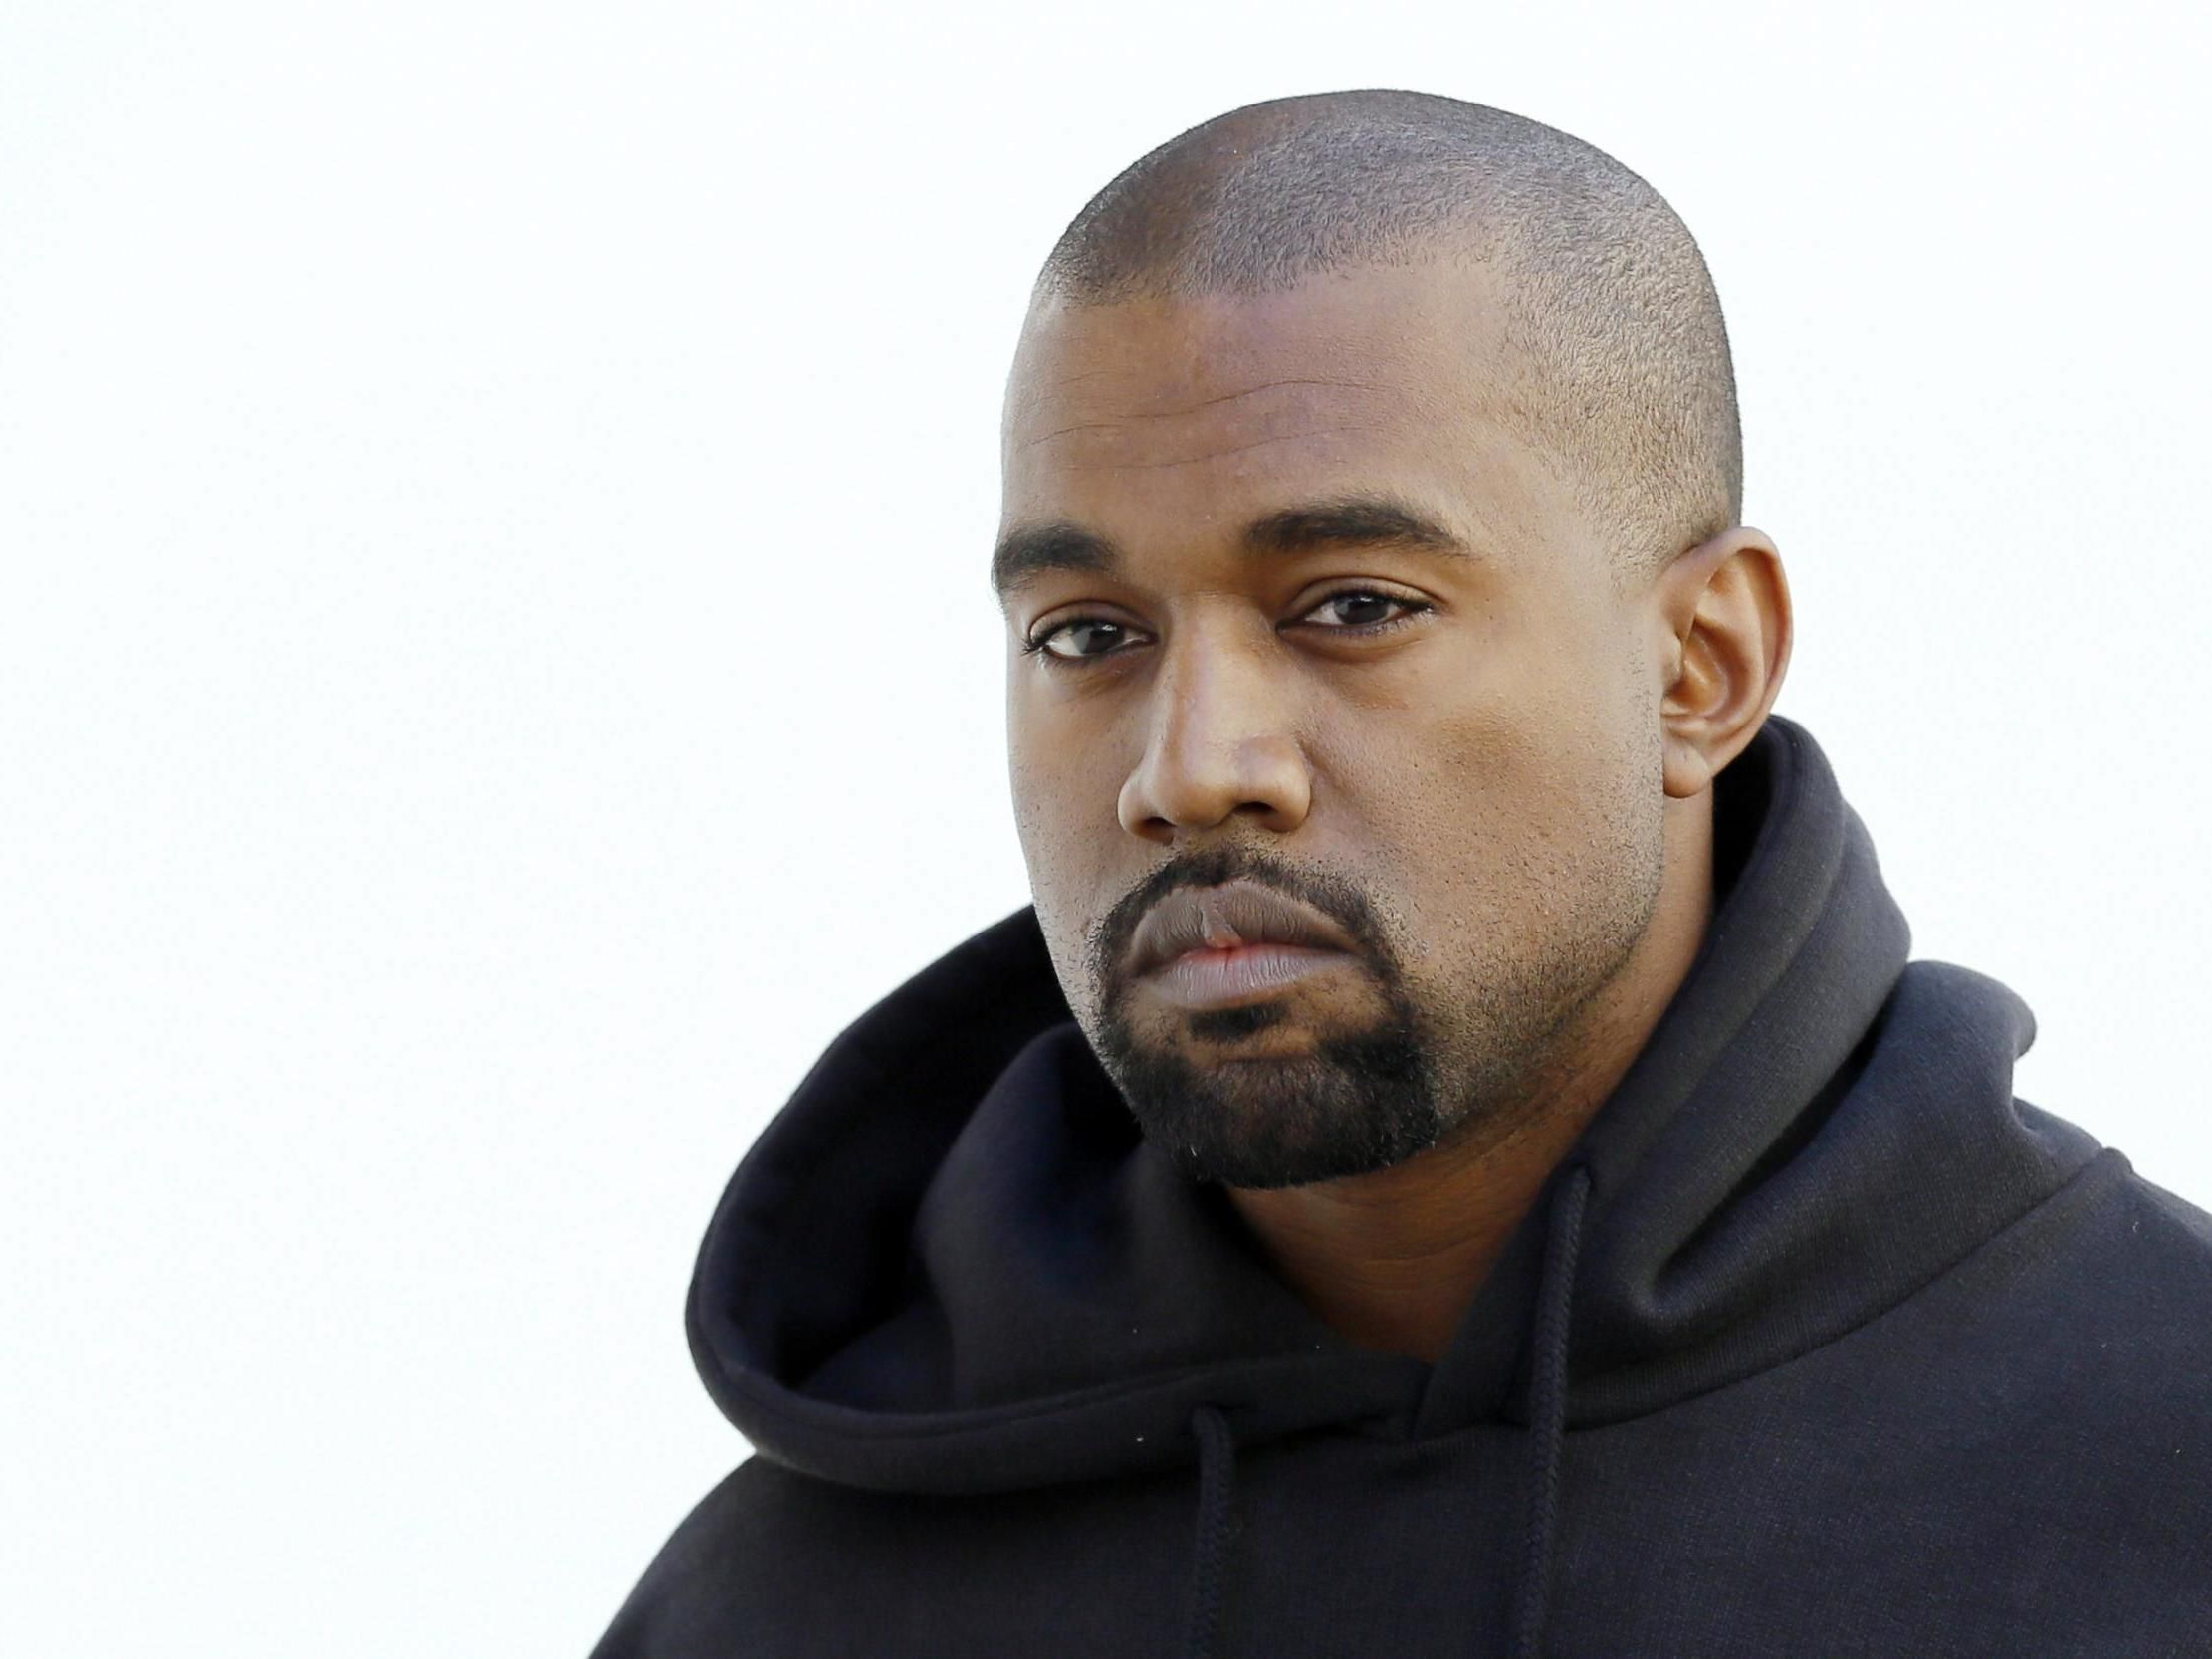 He S Out Member Of West S Campaign Team Alleges In 2020 Kanye West New Album Kanye West Kanye